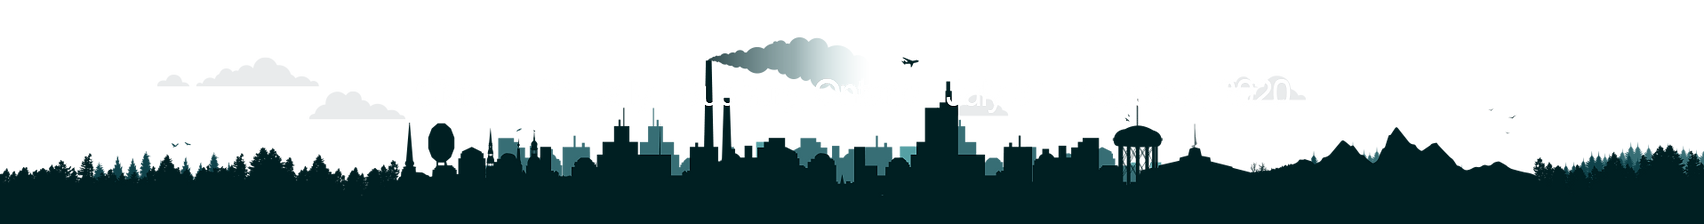 sudbury-skyline-illustration1.png